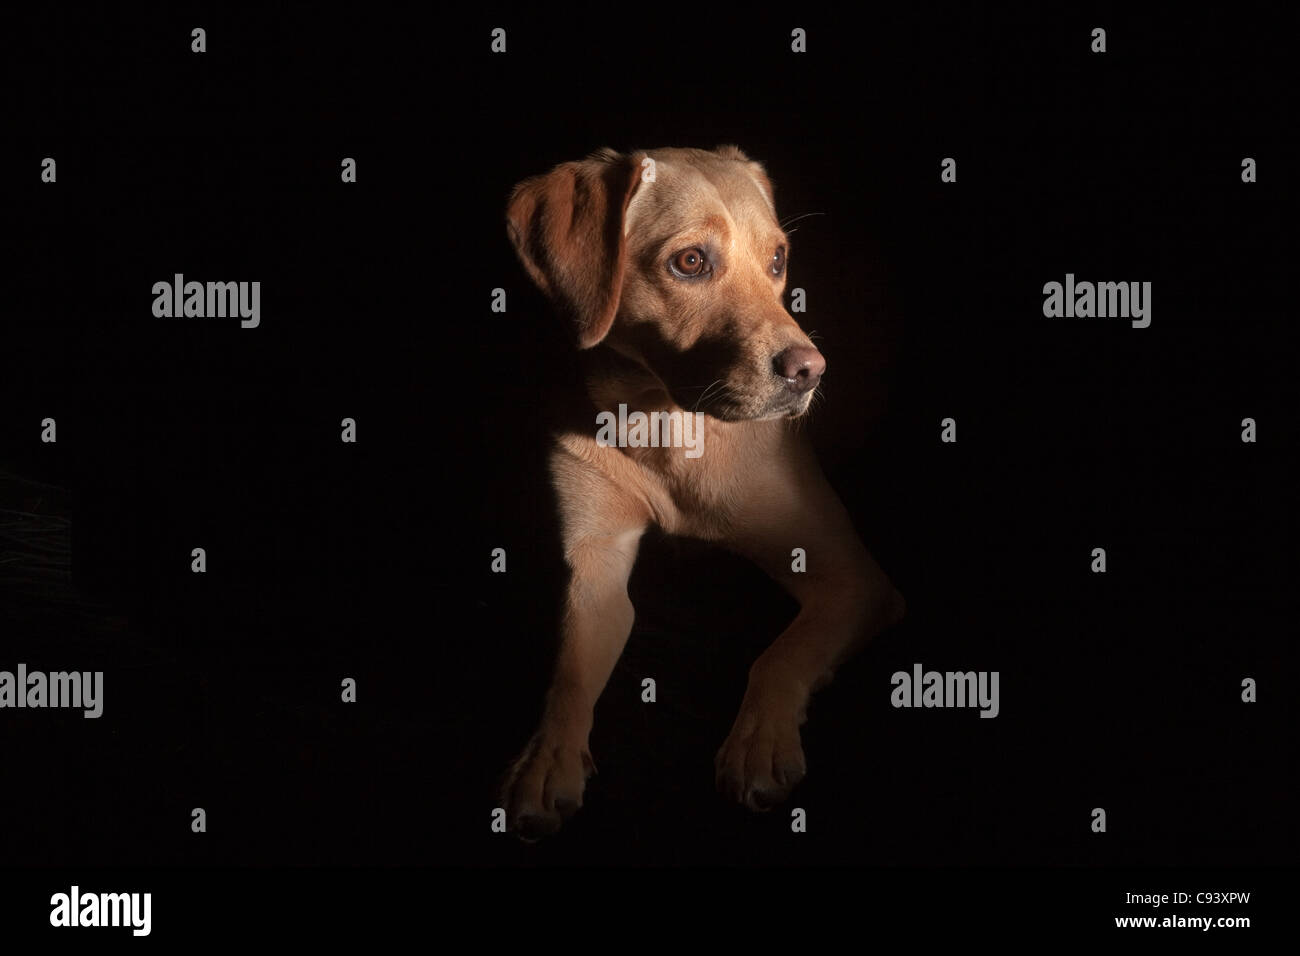 Dramatic low key portrait of Yellow Labrador on black background - Stock Image